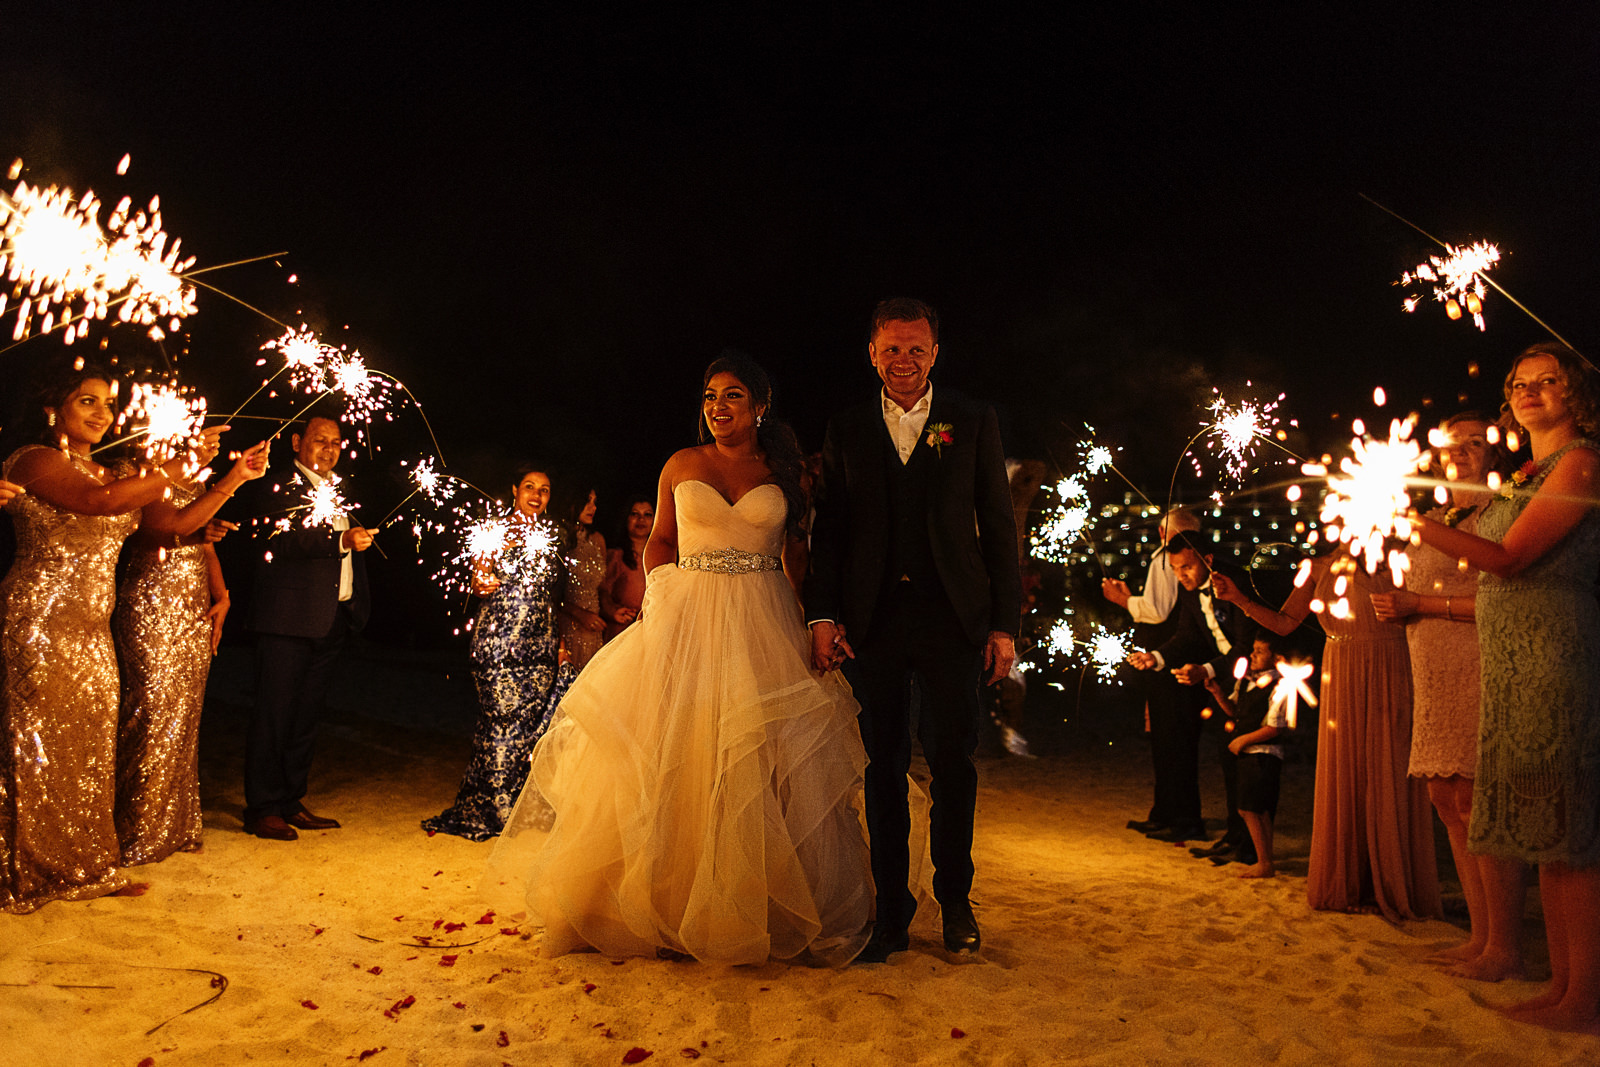 Groom and bride surrounded by their friends and family that hold sparklers at night